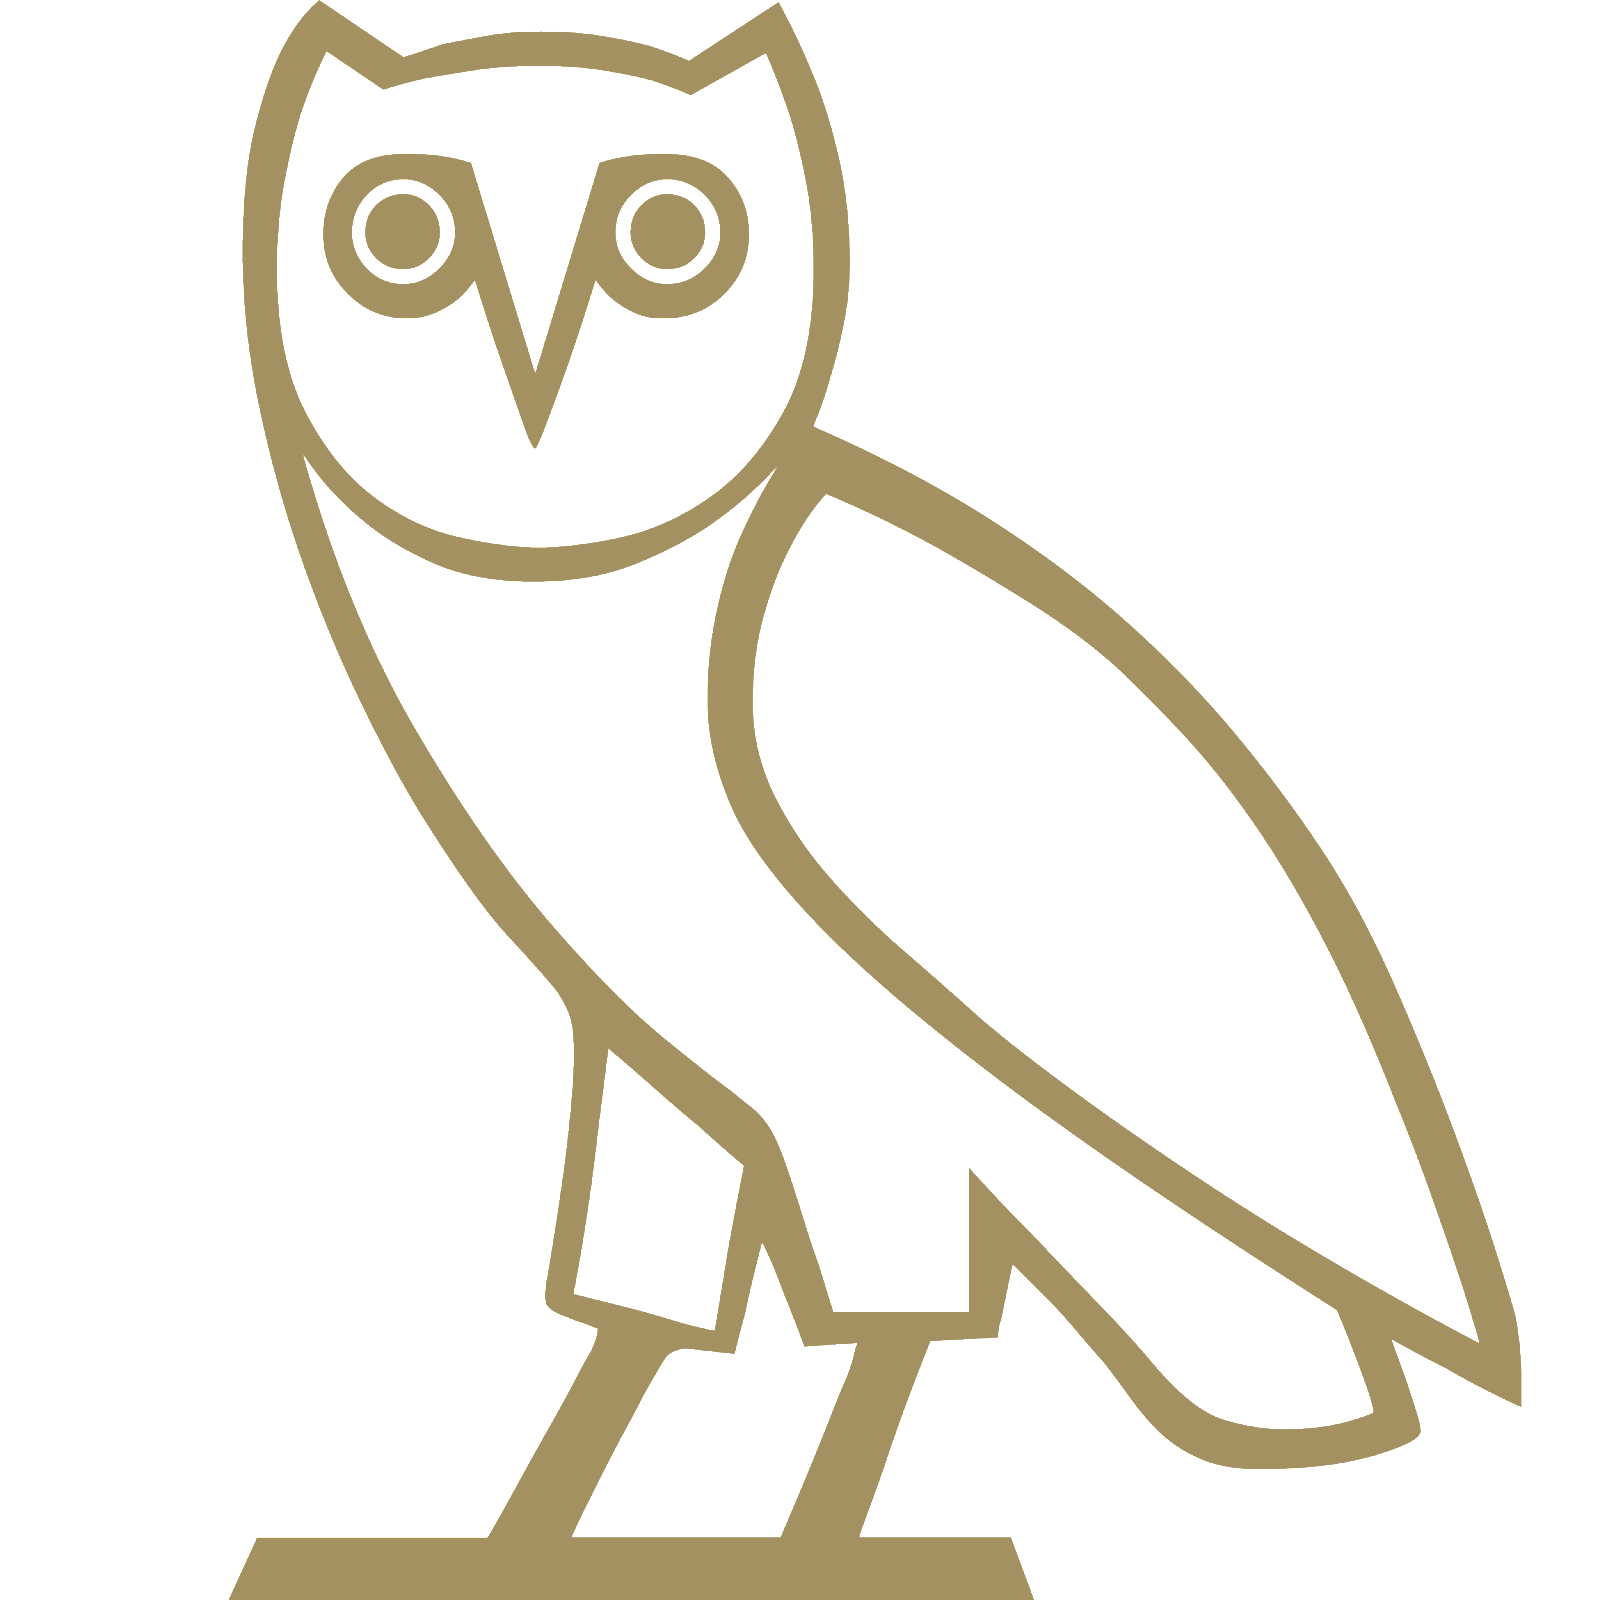 Drake owl png. Wallpaper tumblr projects to